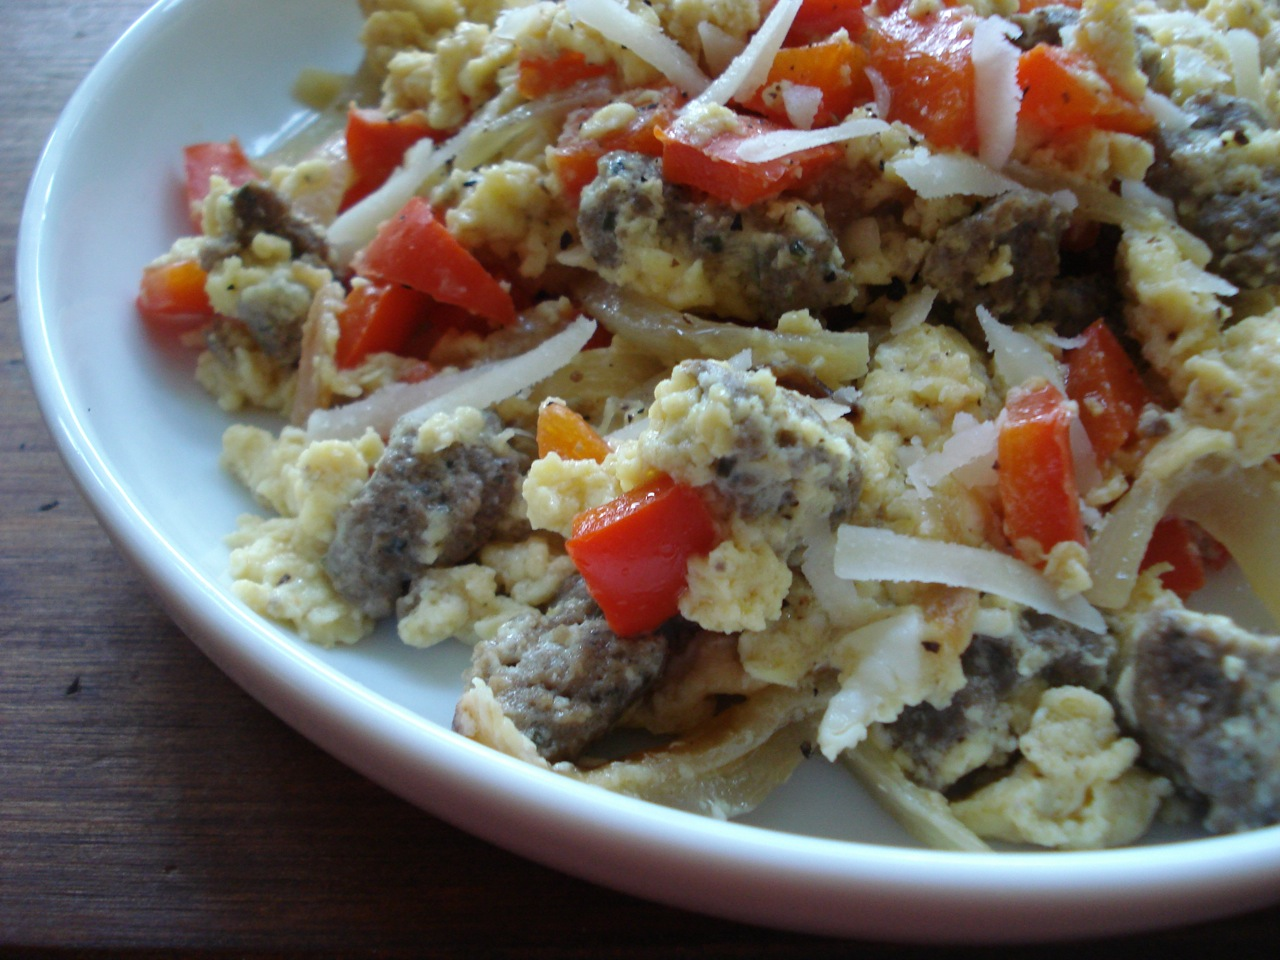 Sausage, Peppers, & Eggs